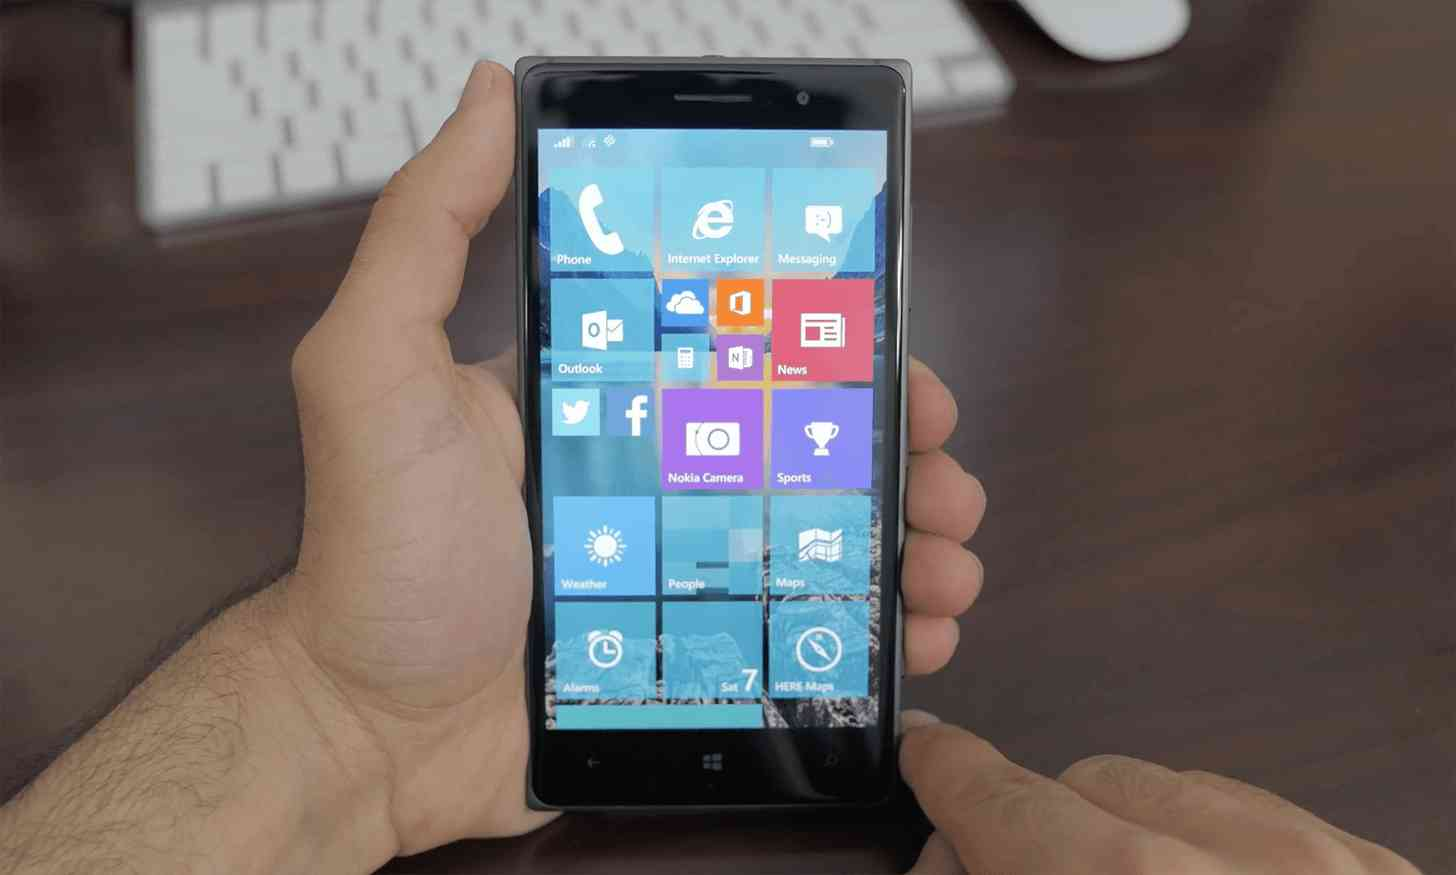 Windows 10 Technical Preview for phones hands on